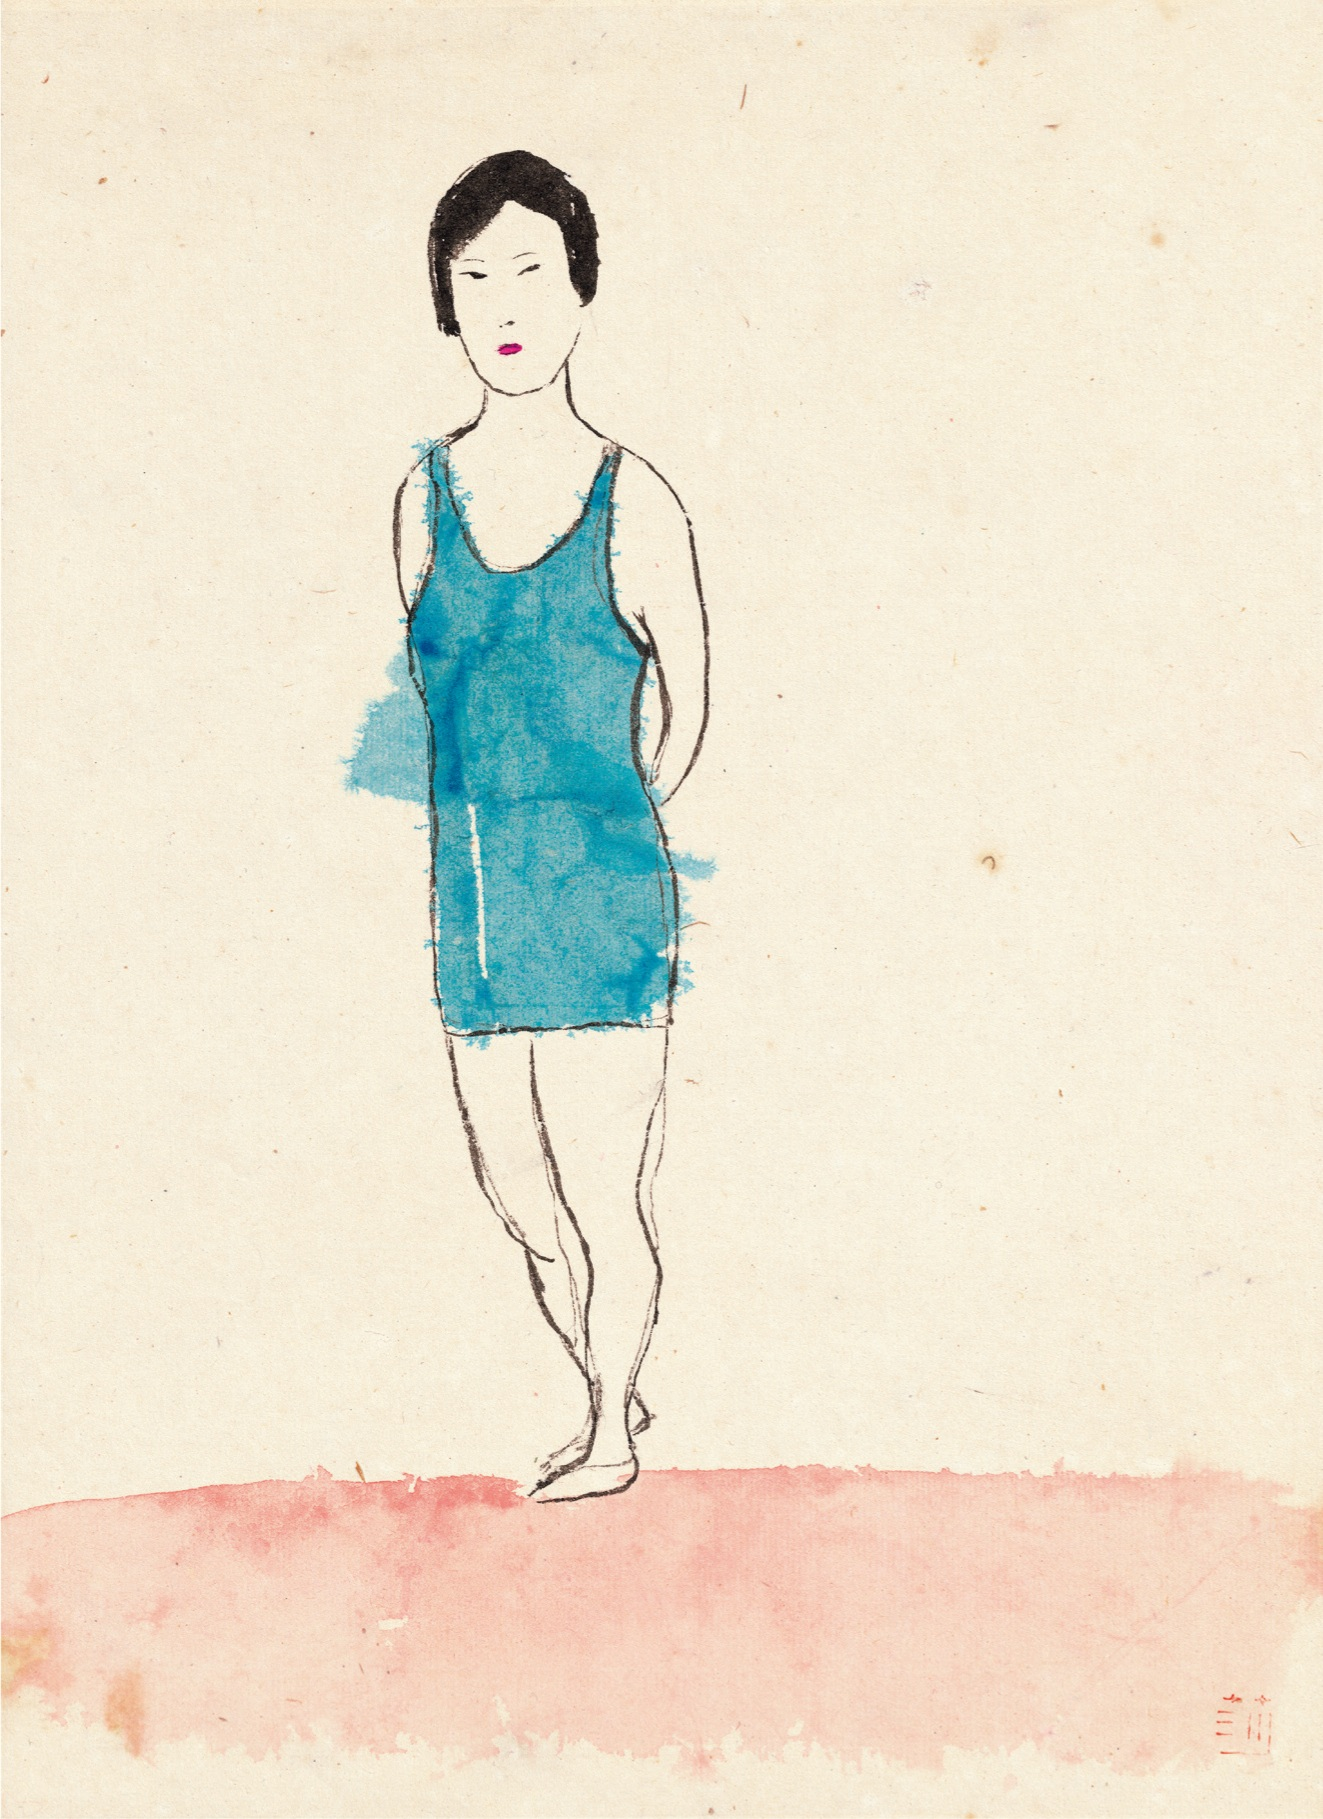 Wang Mengsha 王濛莎, Flowing Time 新似水年华系列, 2011, Chinese ink and color on paper 纸本水墨设色, 30 x 48 cm